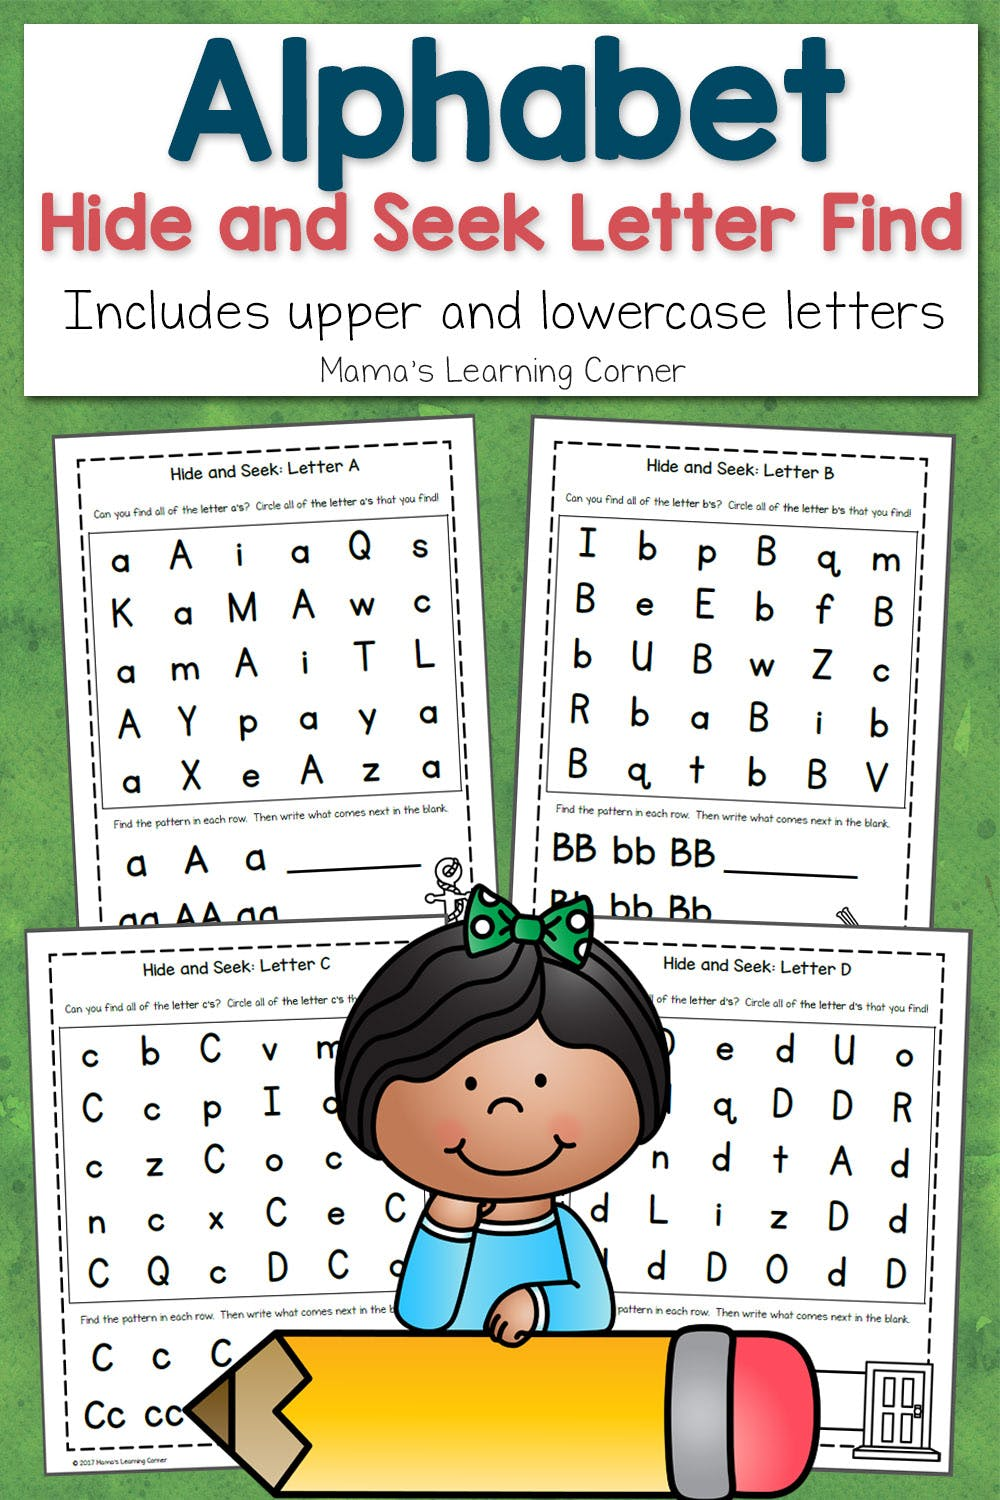 hight resolution of ABC Hide and Seek Letter Find for Preschoolers - Mamas Learning Corner